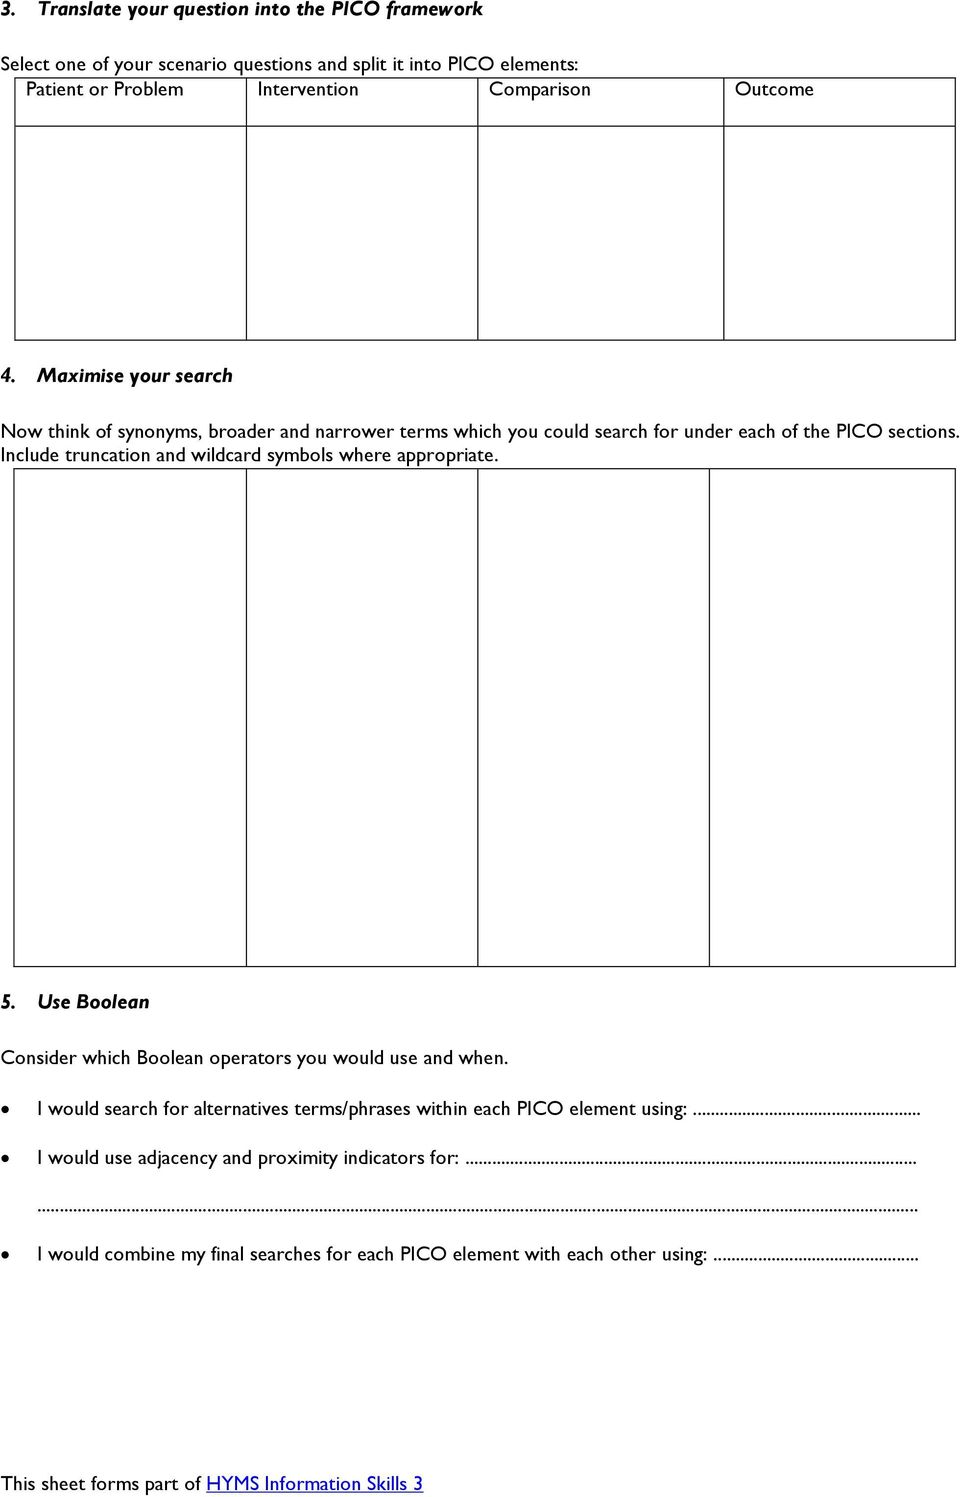 Pico And Search Strategy Worksheet 1 Pdf